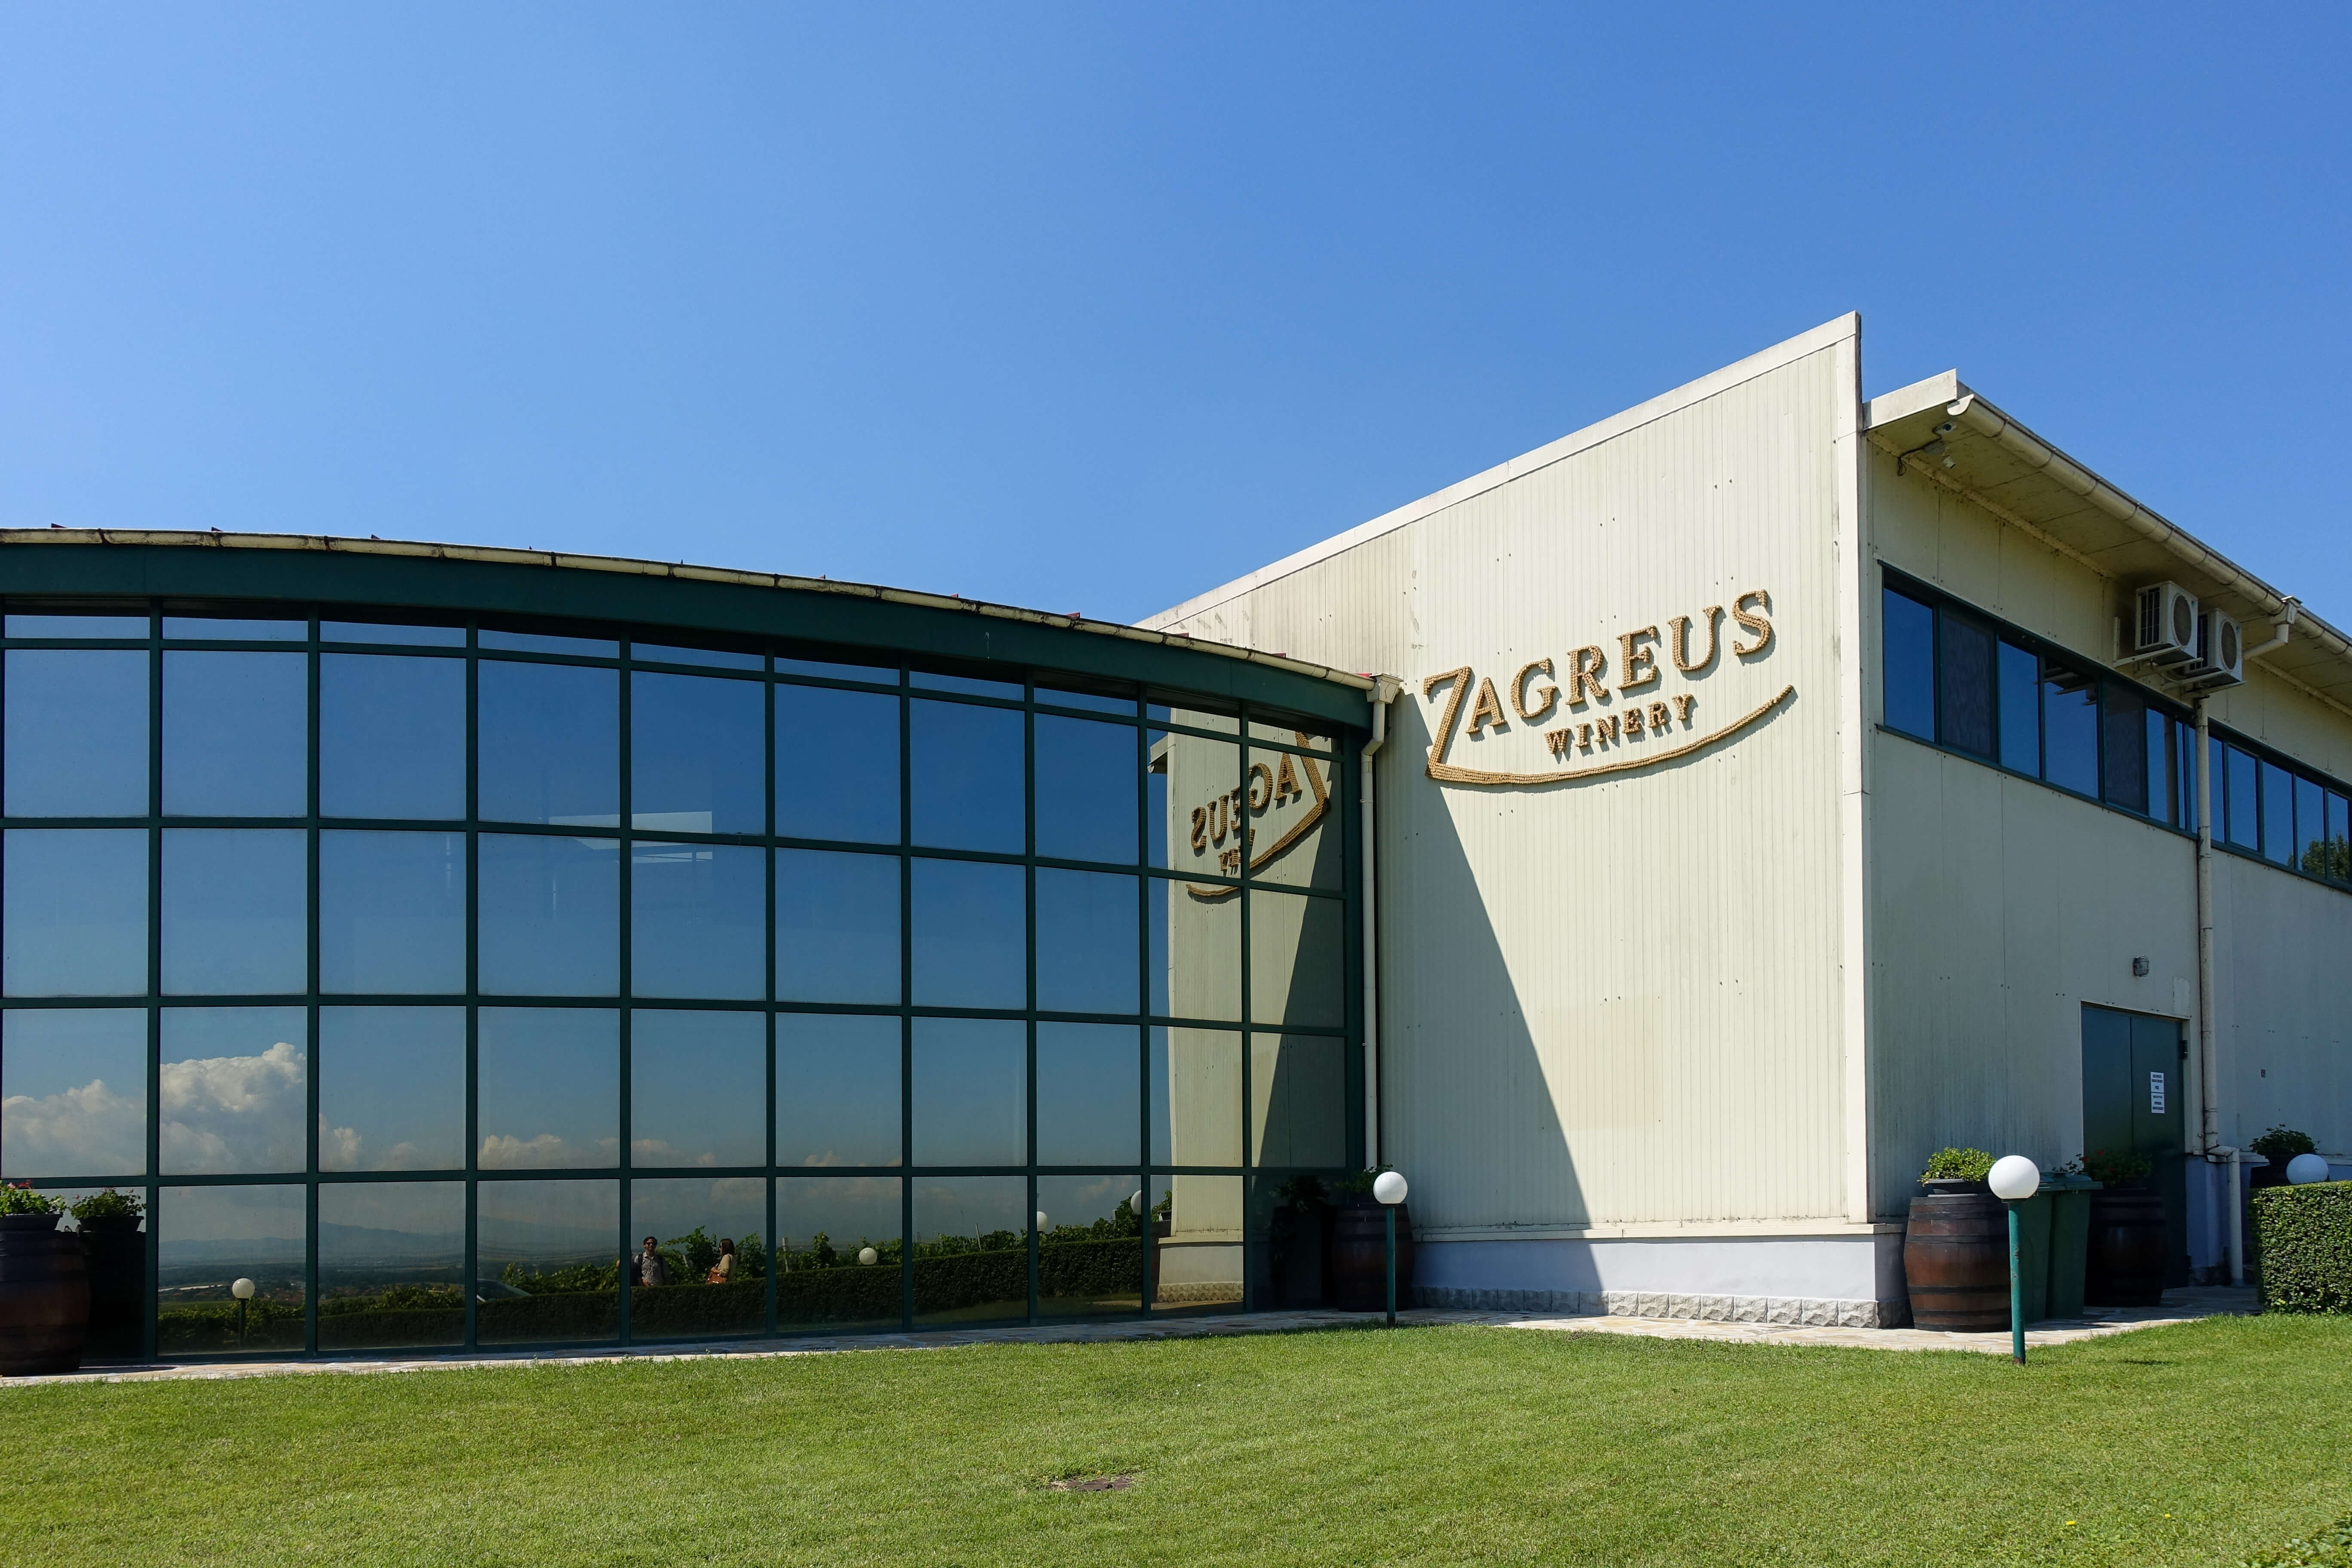 The exterior or Zagreus winery